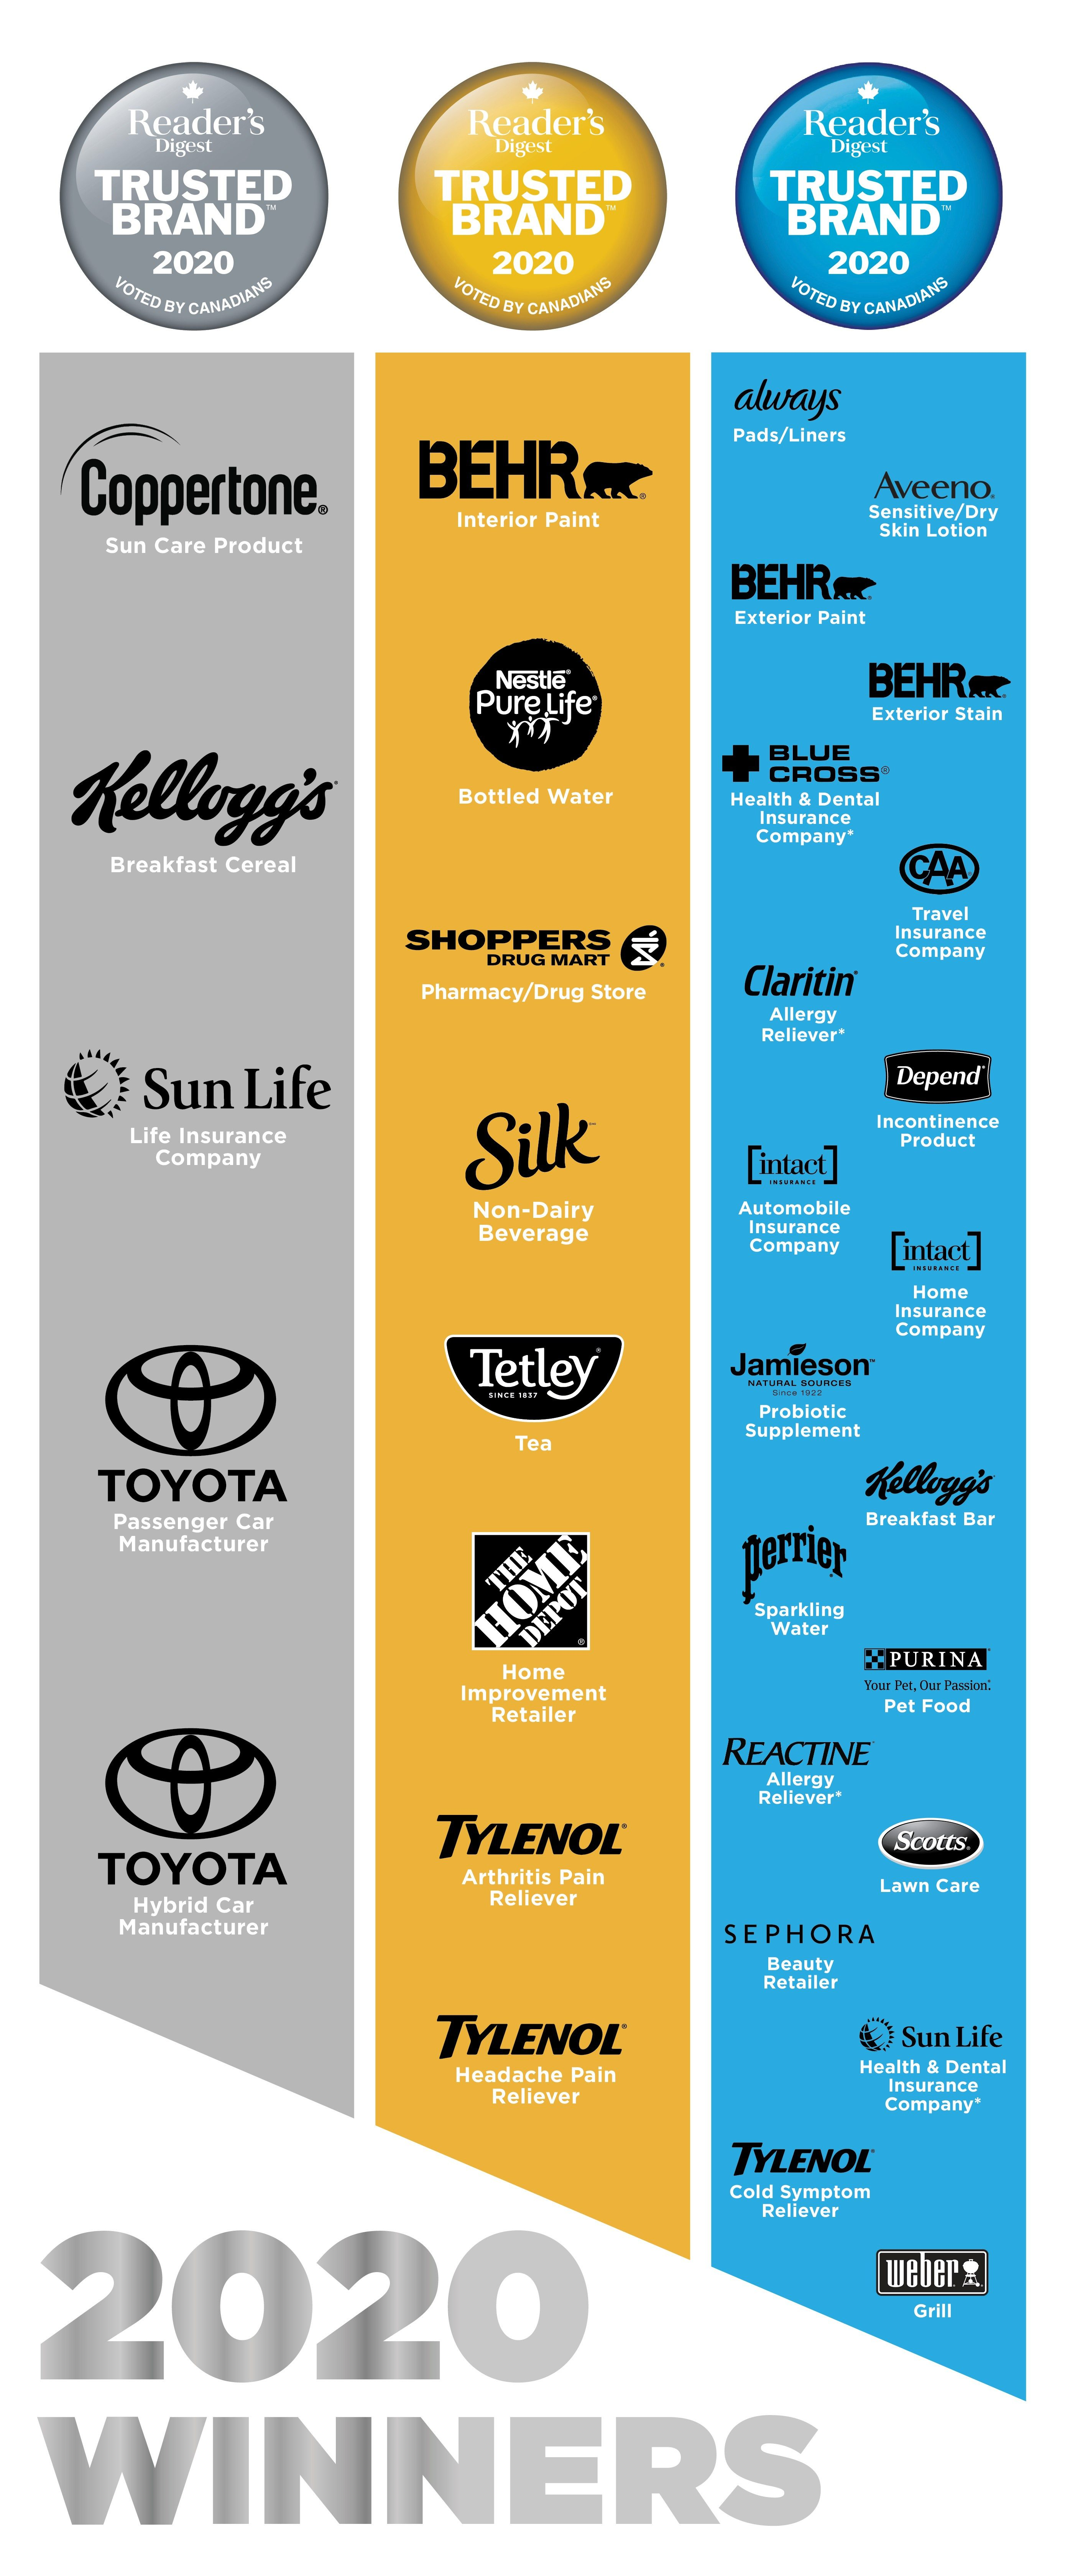 Reader's Digest Trusted Brands winners